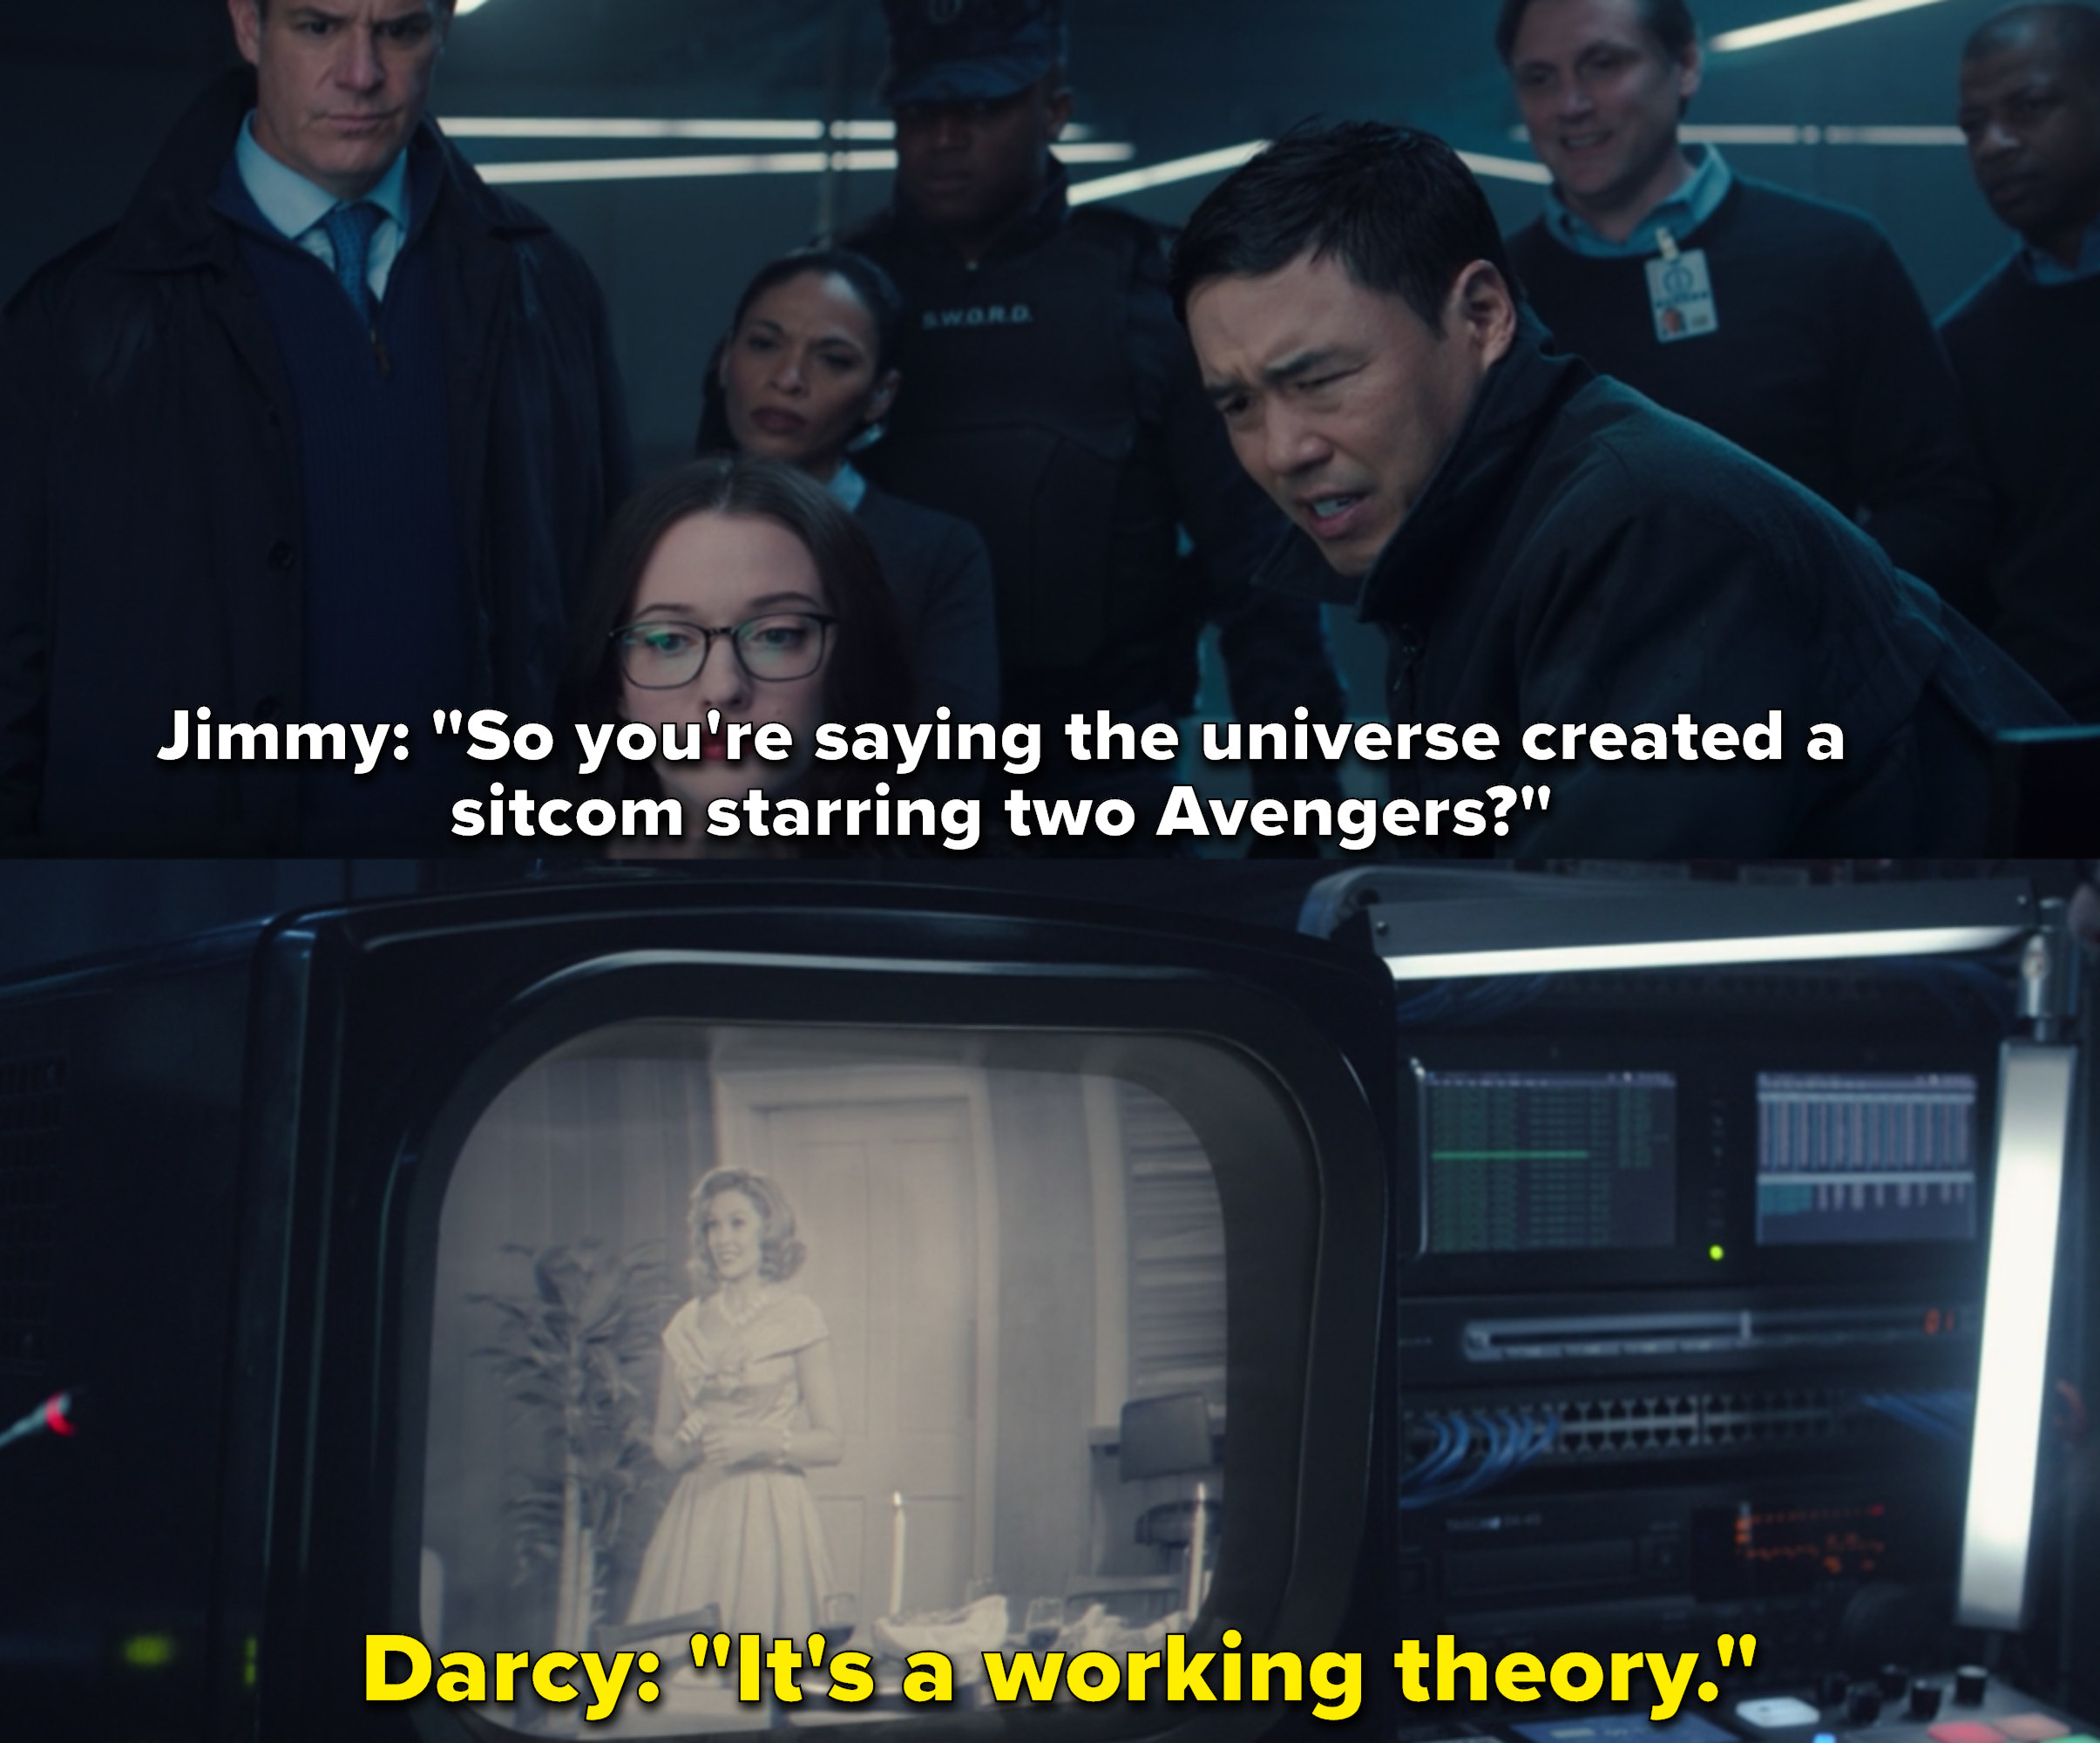 """Jimmy Woo says """"So you're saying the universe created a sitcom starring two Avengers?"""" to which Darcy replies, """"It's a working theory"""""""